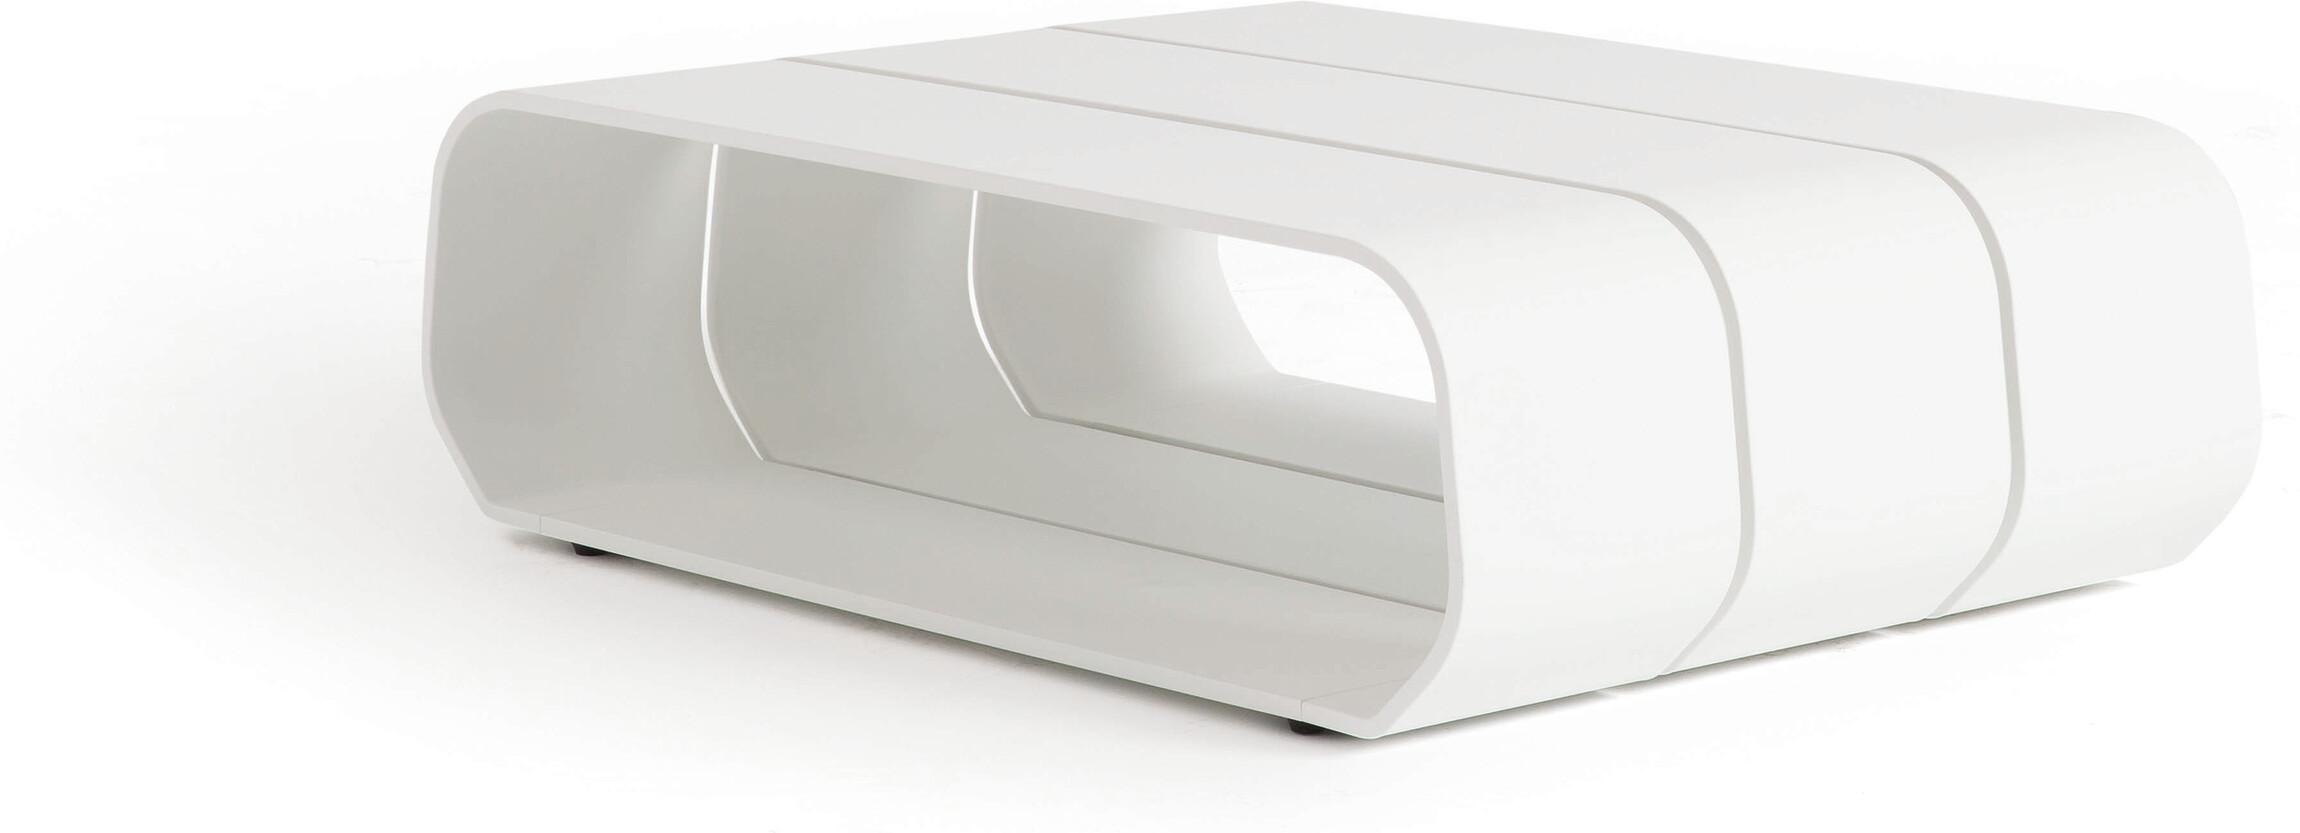 Vitral outdoor sidetable 80X58 - white